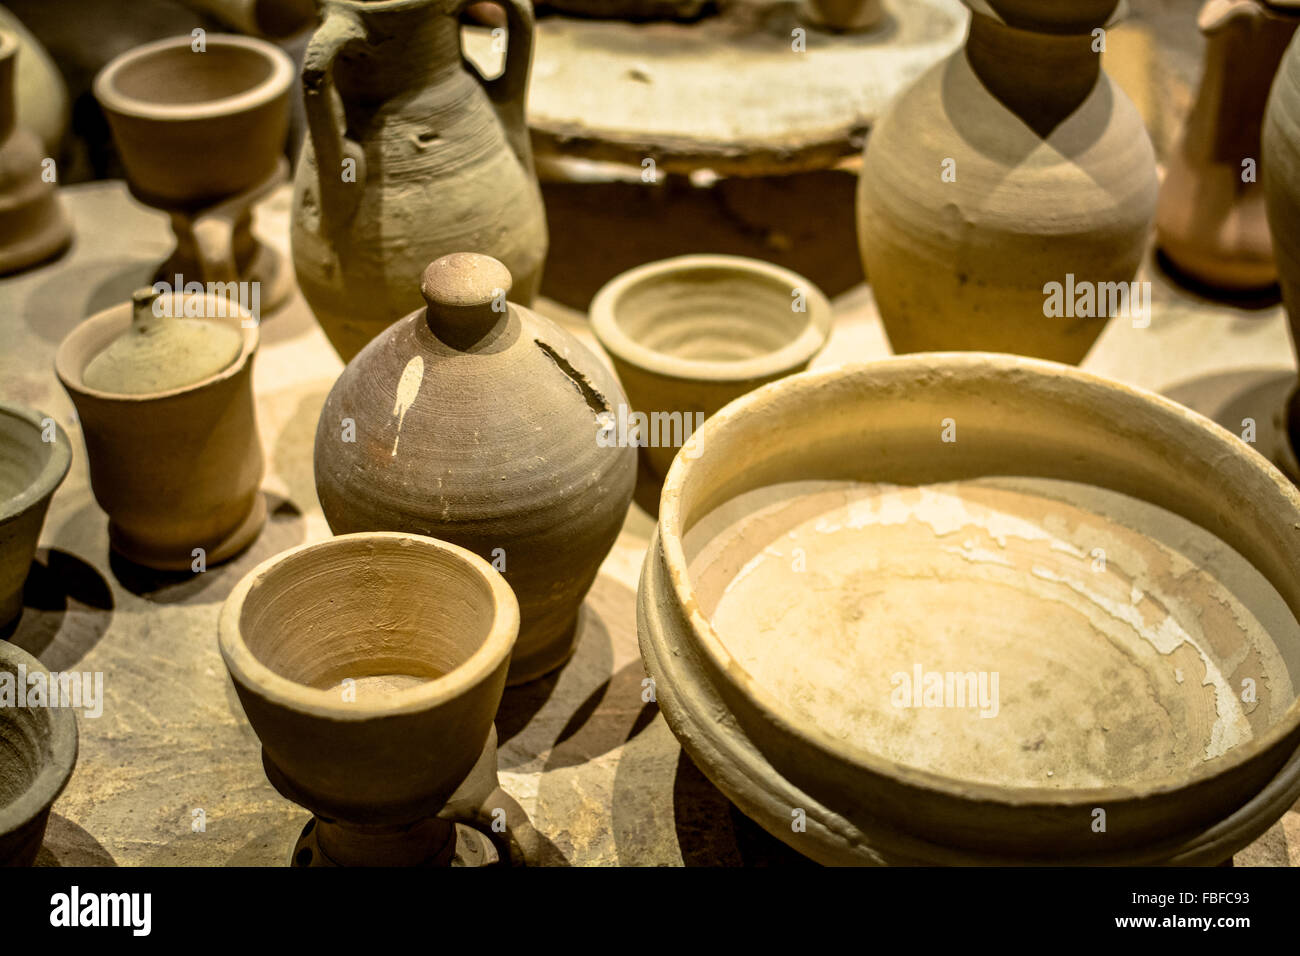 Group of traditional handmade ceramic crafts - Stock Image